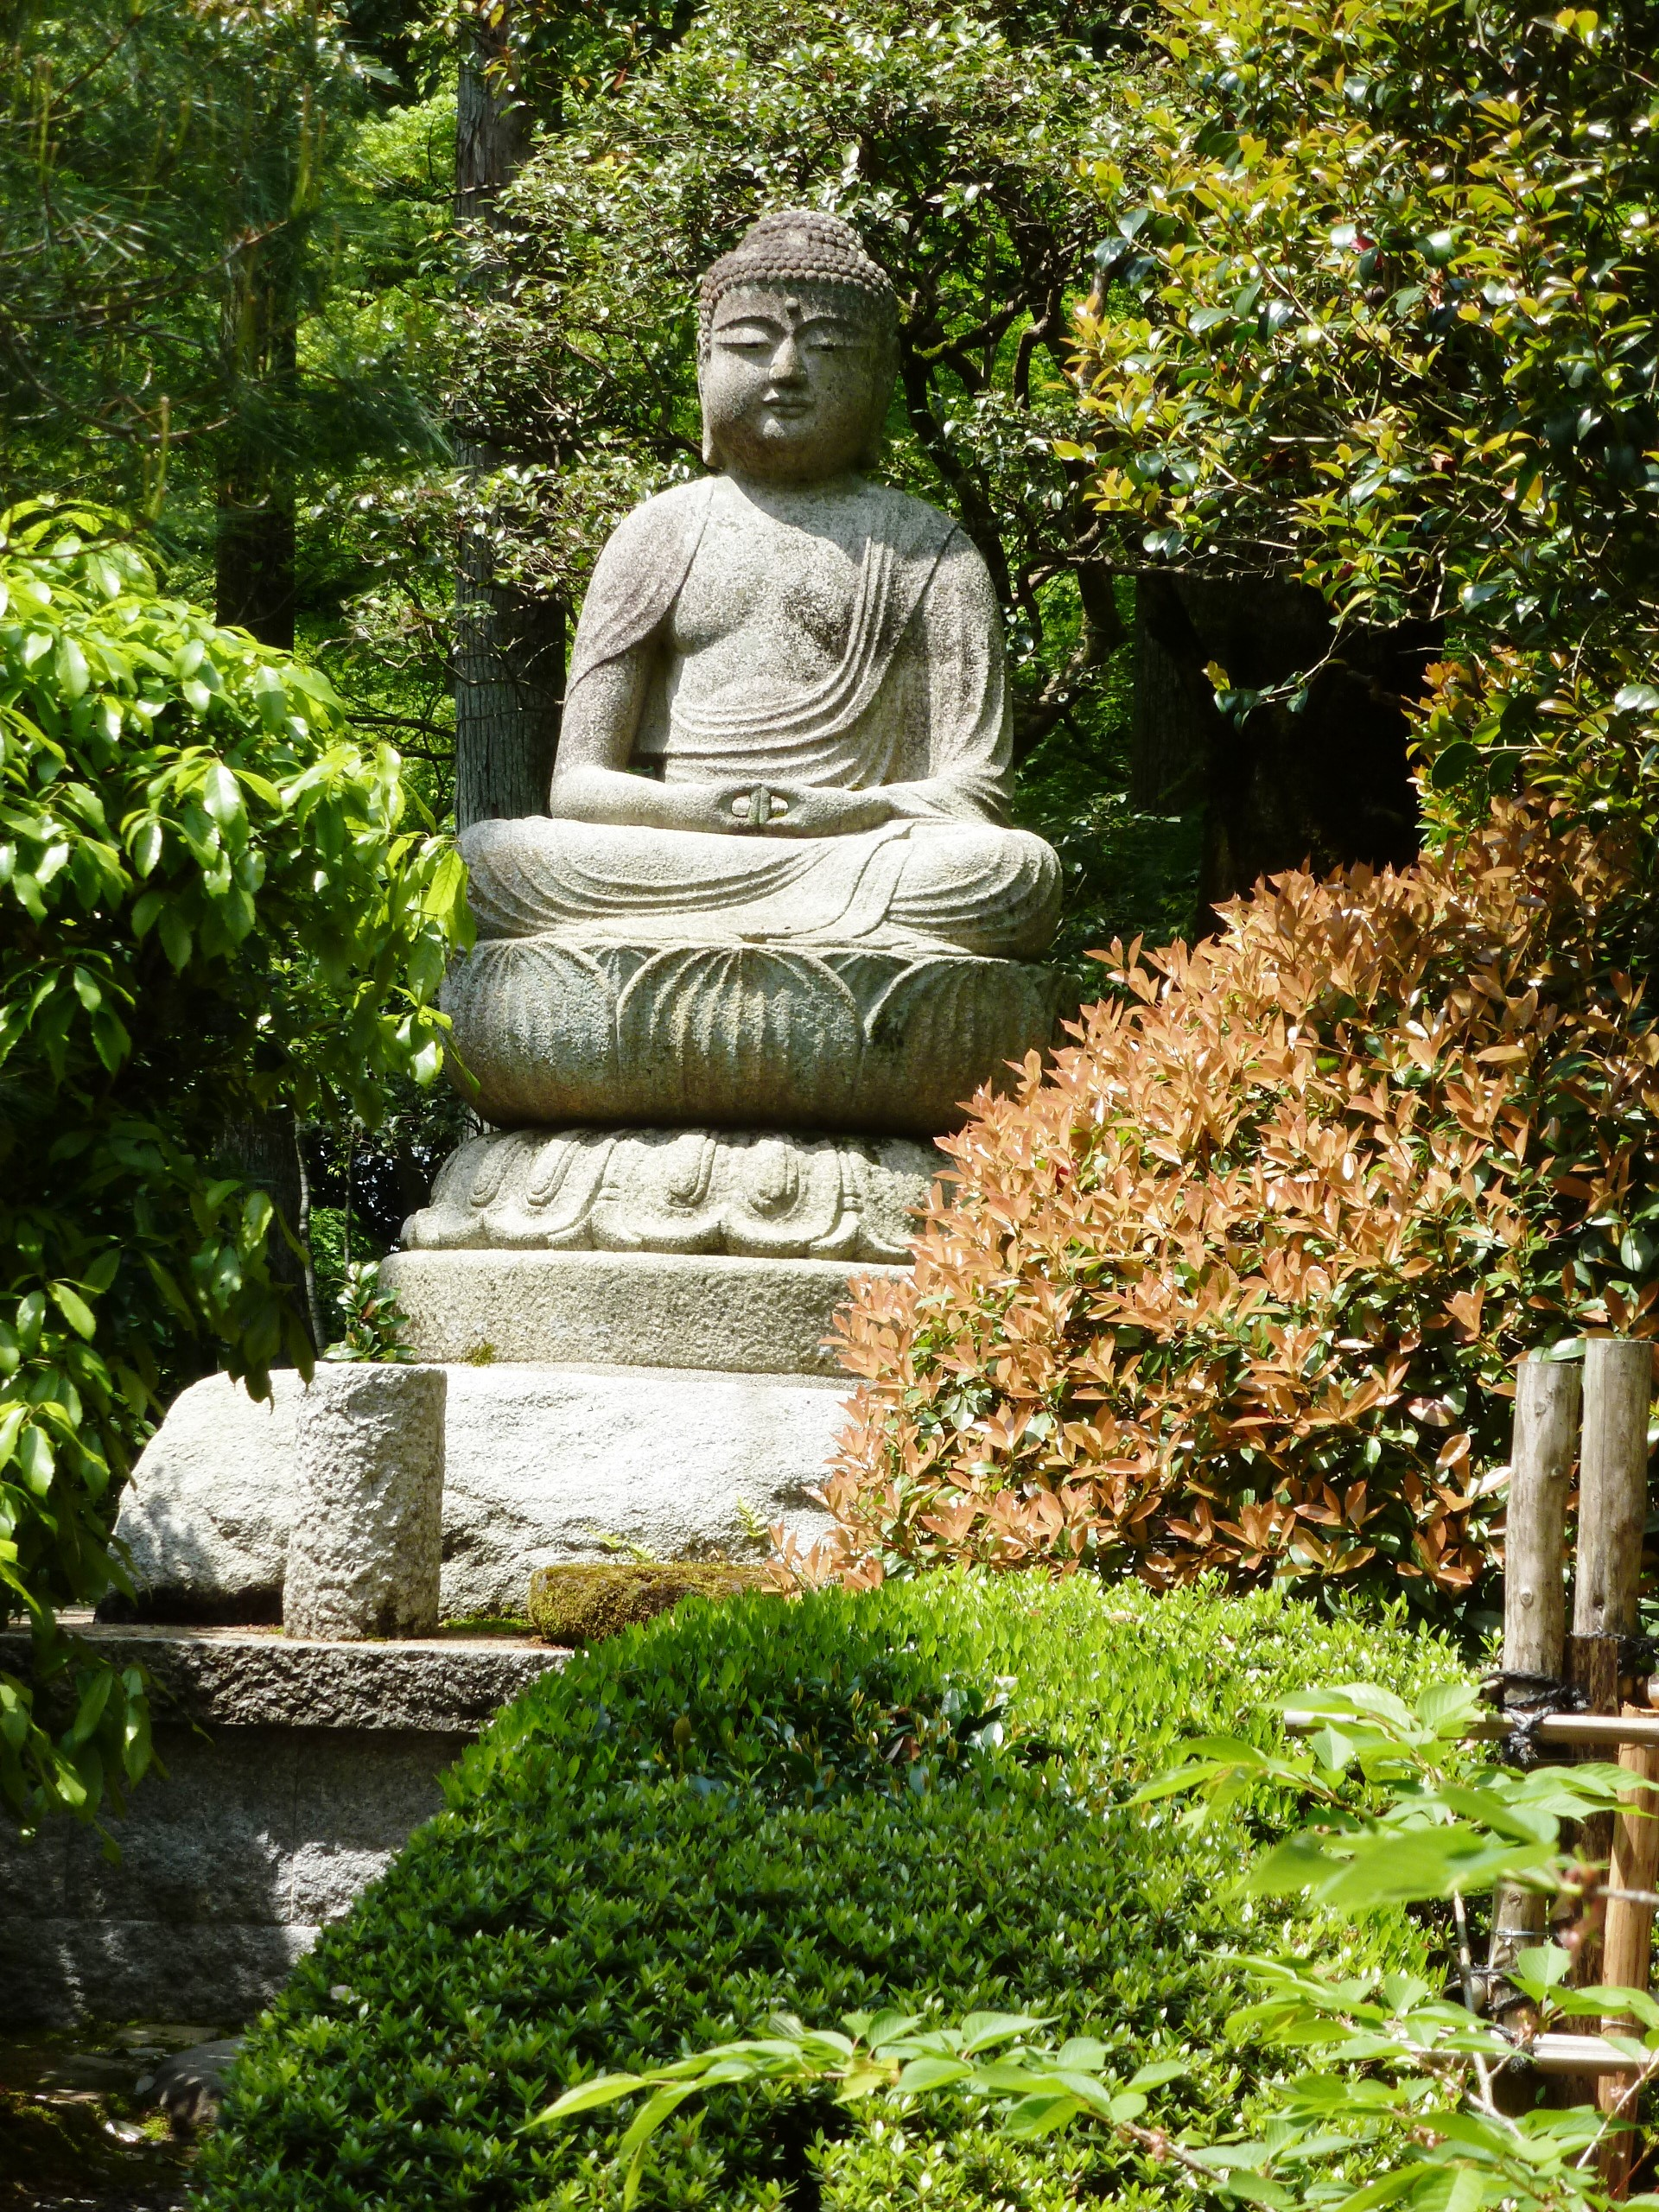 Guardian Buddha, Ryoanji, Kyoto, Japan